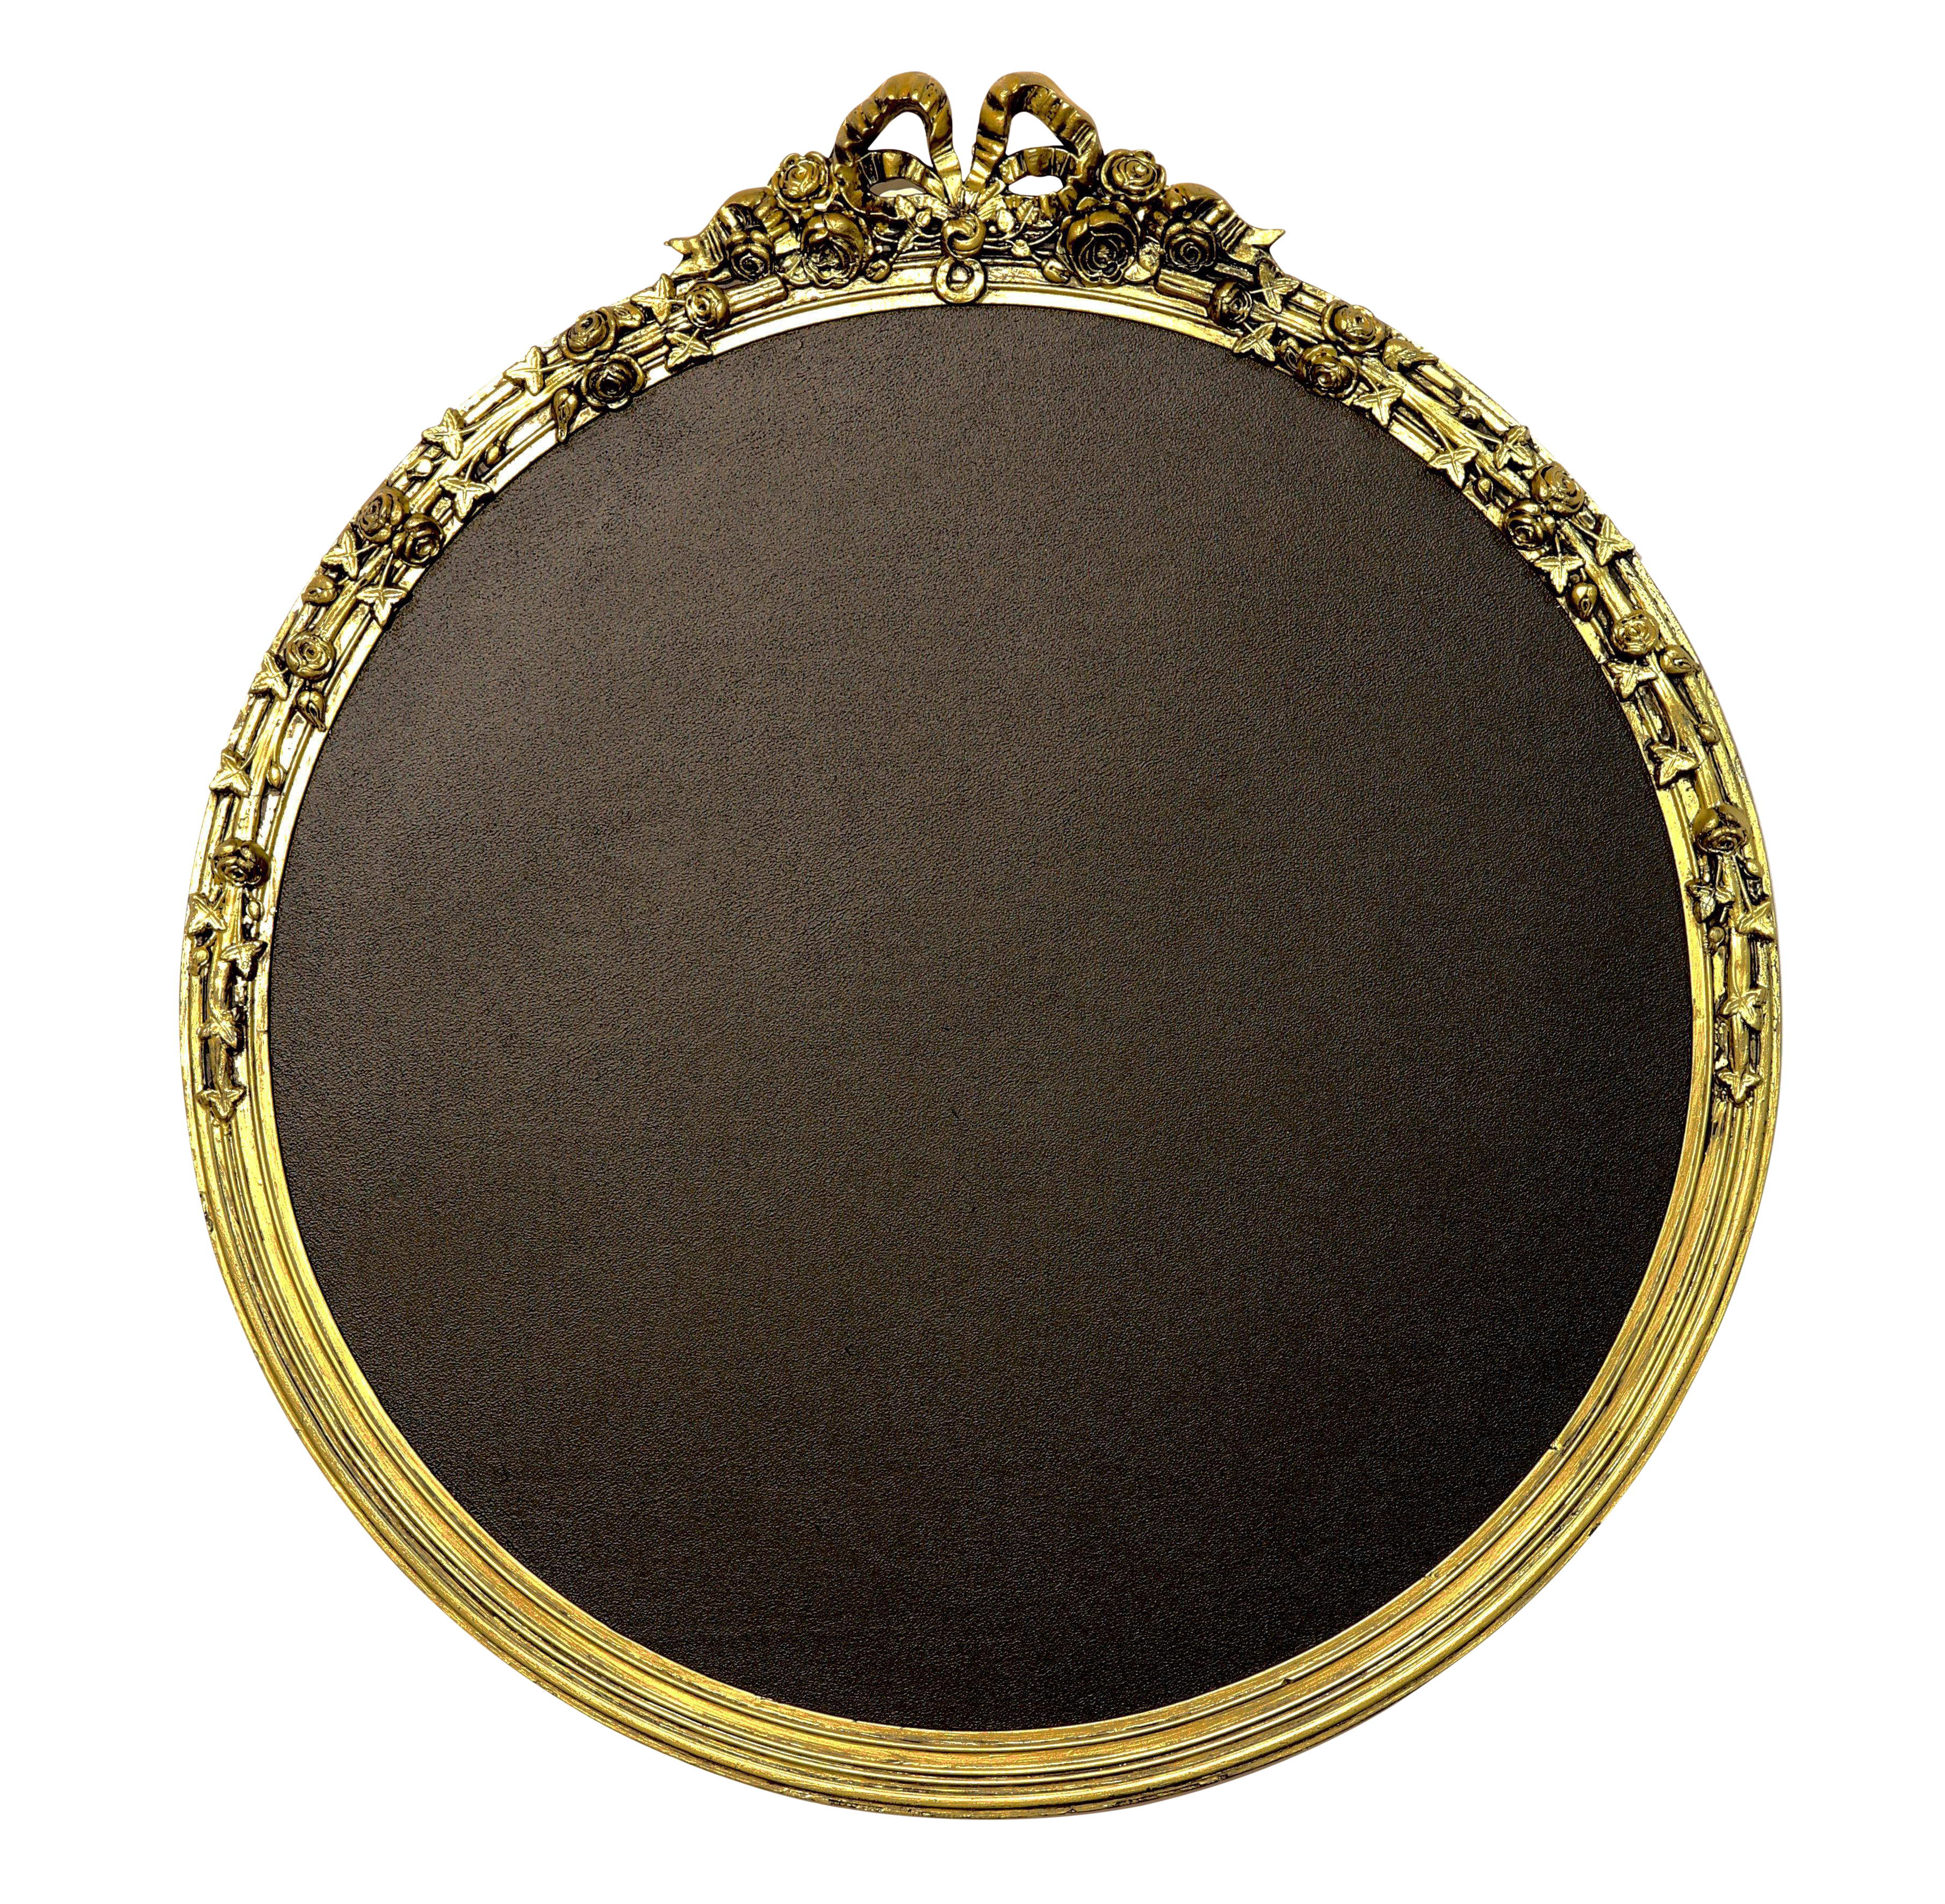 Round gold framed chairish. Chalkboard frame png